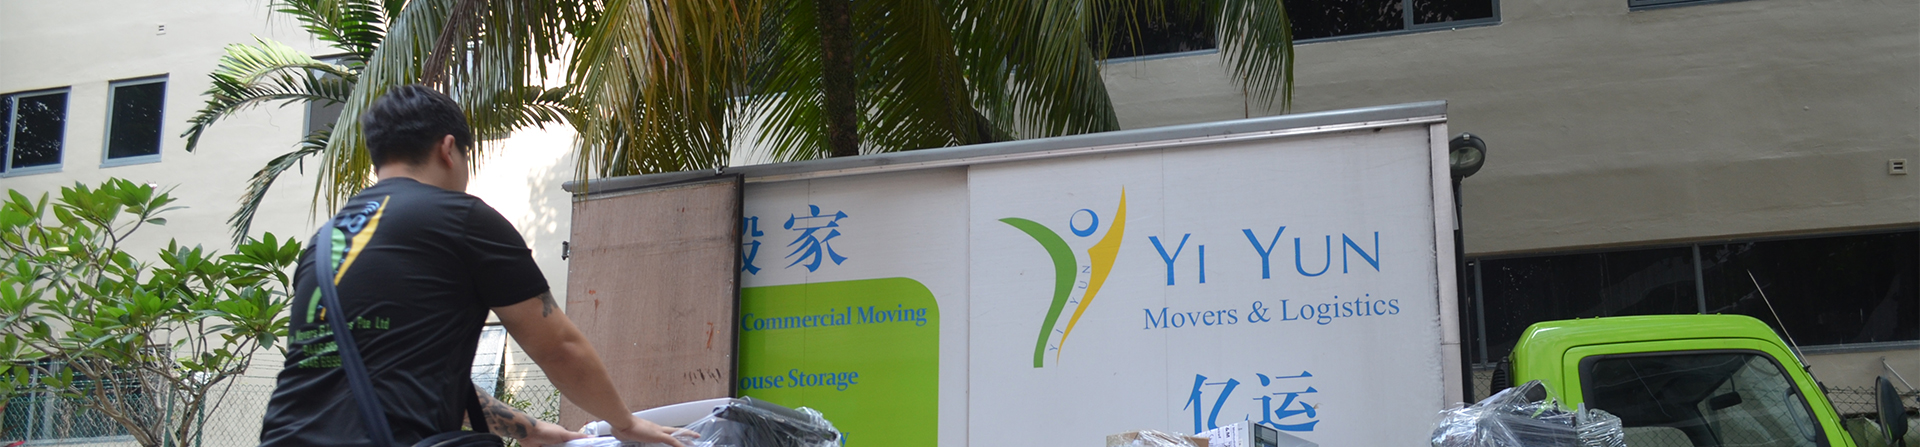 Yi Yun Movers and Logistics Crew and Lorry